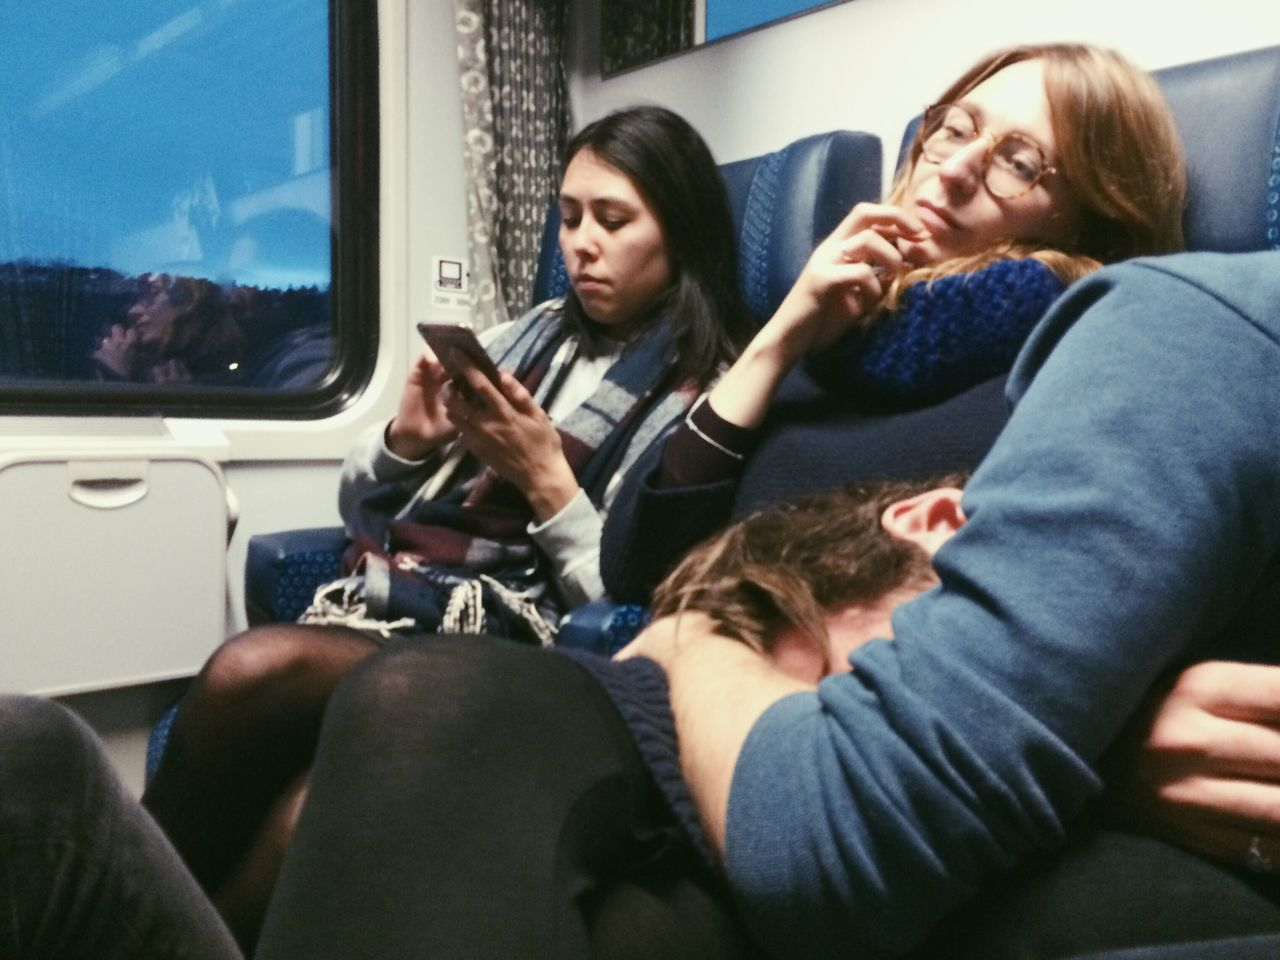 exhausted from traveling Vehicle Interior Transportation Casual Clothing Lifestyles Real People Passenger Sitting Two People Young Women Young Adult Land Vehicle Car Interior Indoors  Togetherness Day Adult Adults Only People Friends Exhausted Tired Bored Sleepy Mobile Device